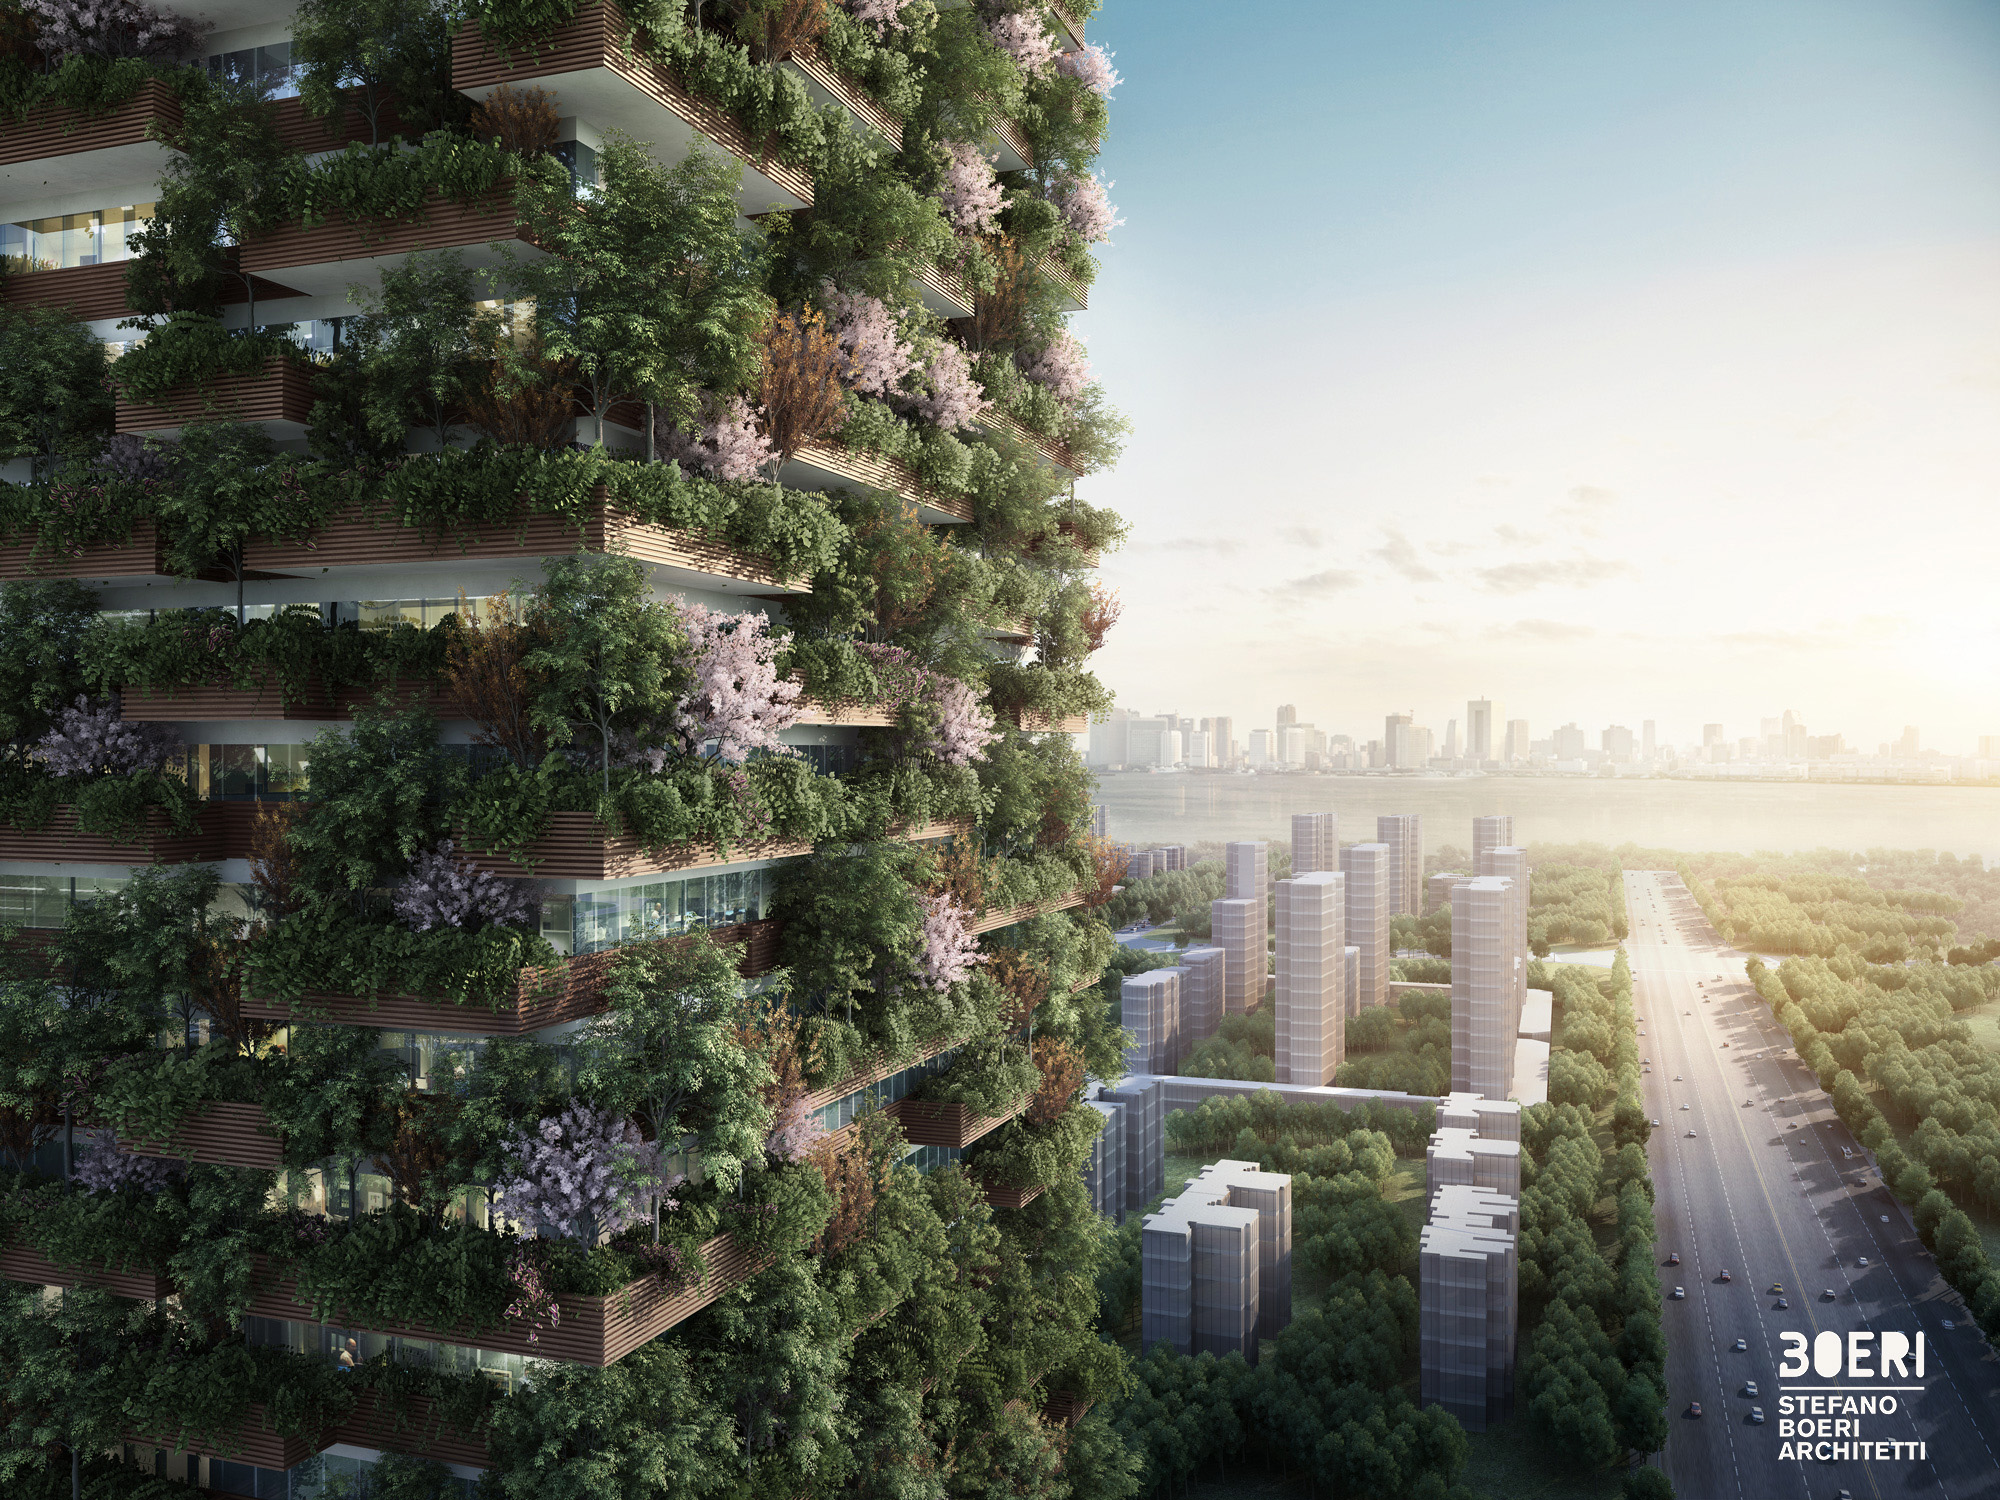 bosco verticale nanchino boeri